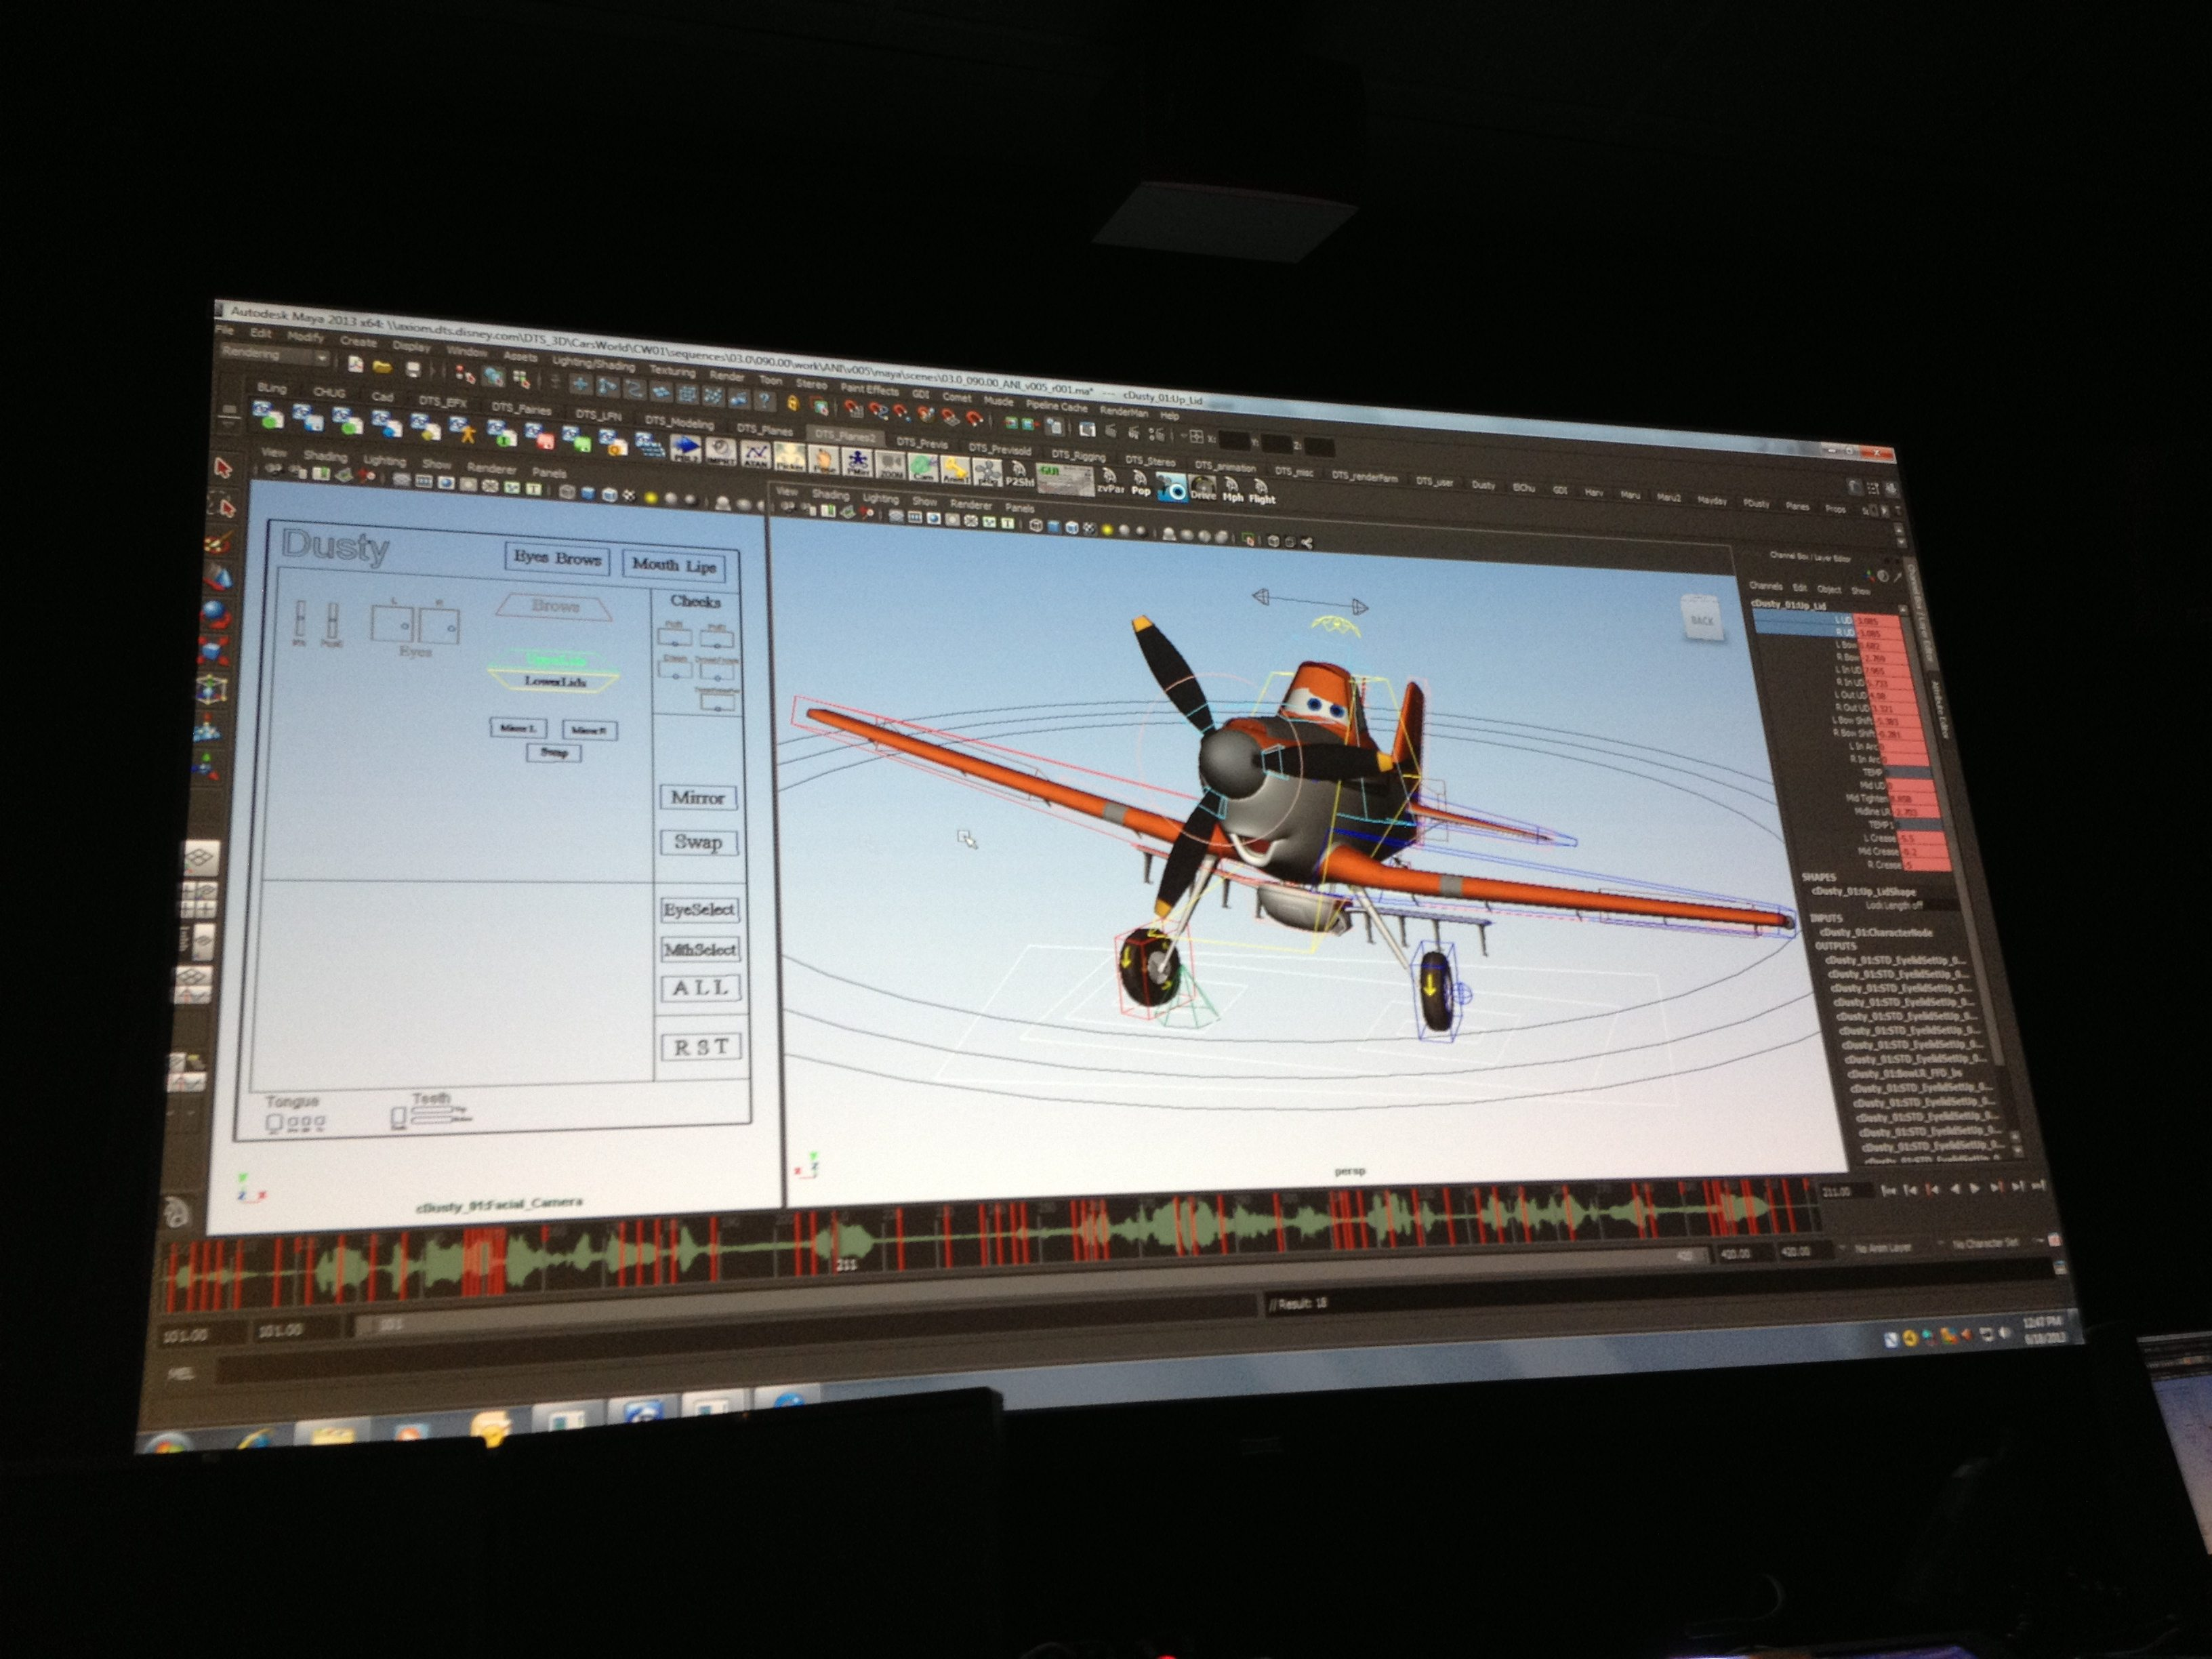 Look Behind the Scenes at Disney's Planes – The Computer Animation Department